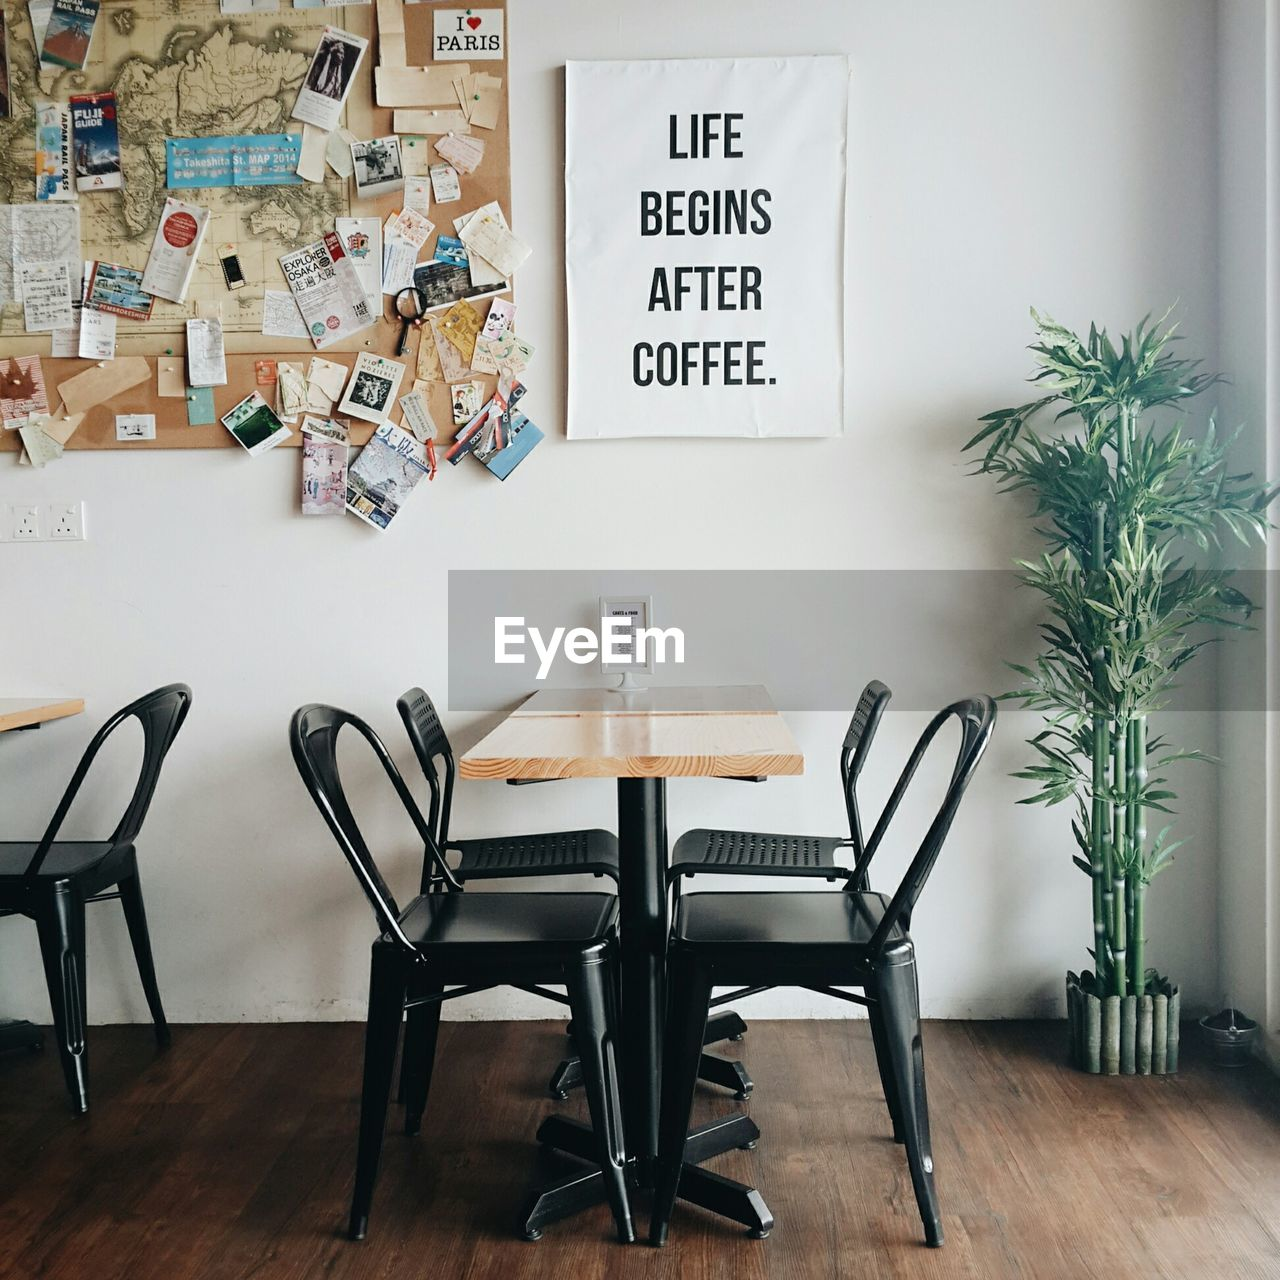 Place setting in cafe against text on wall